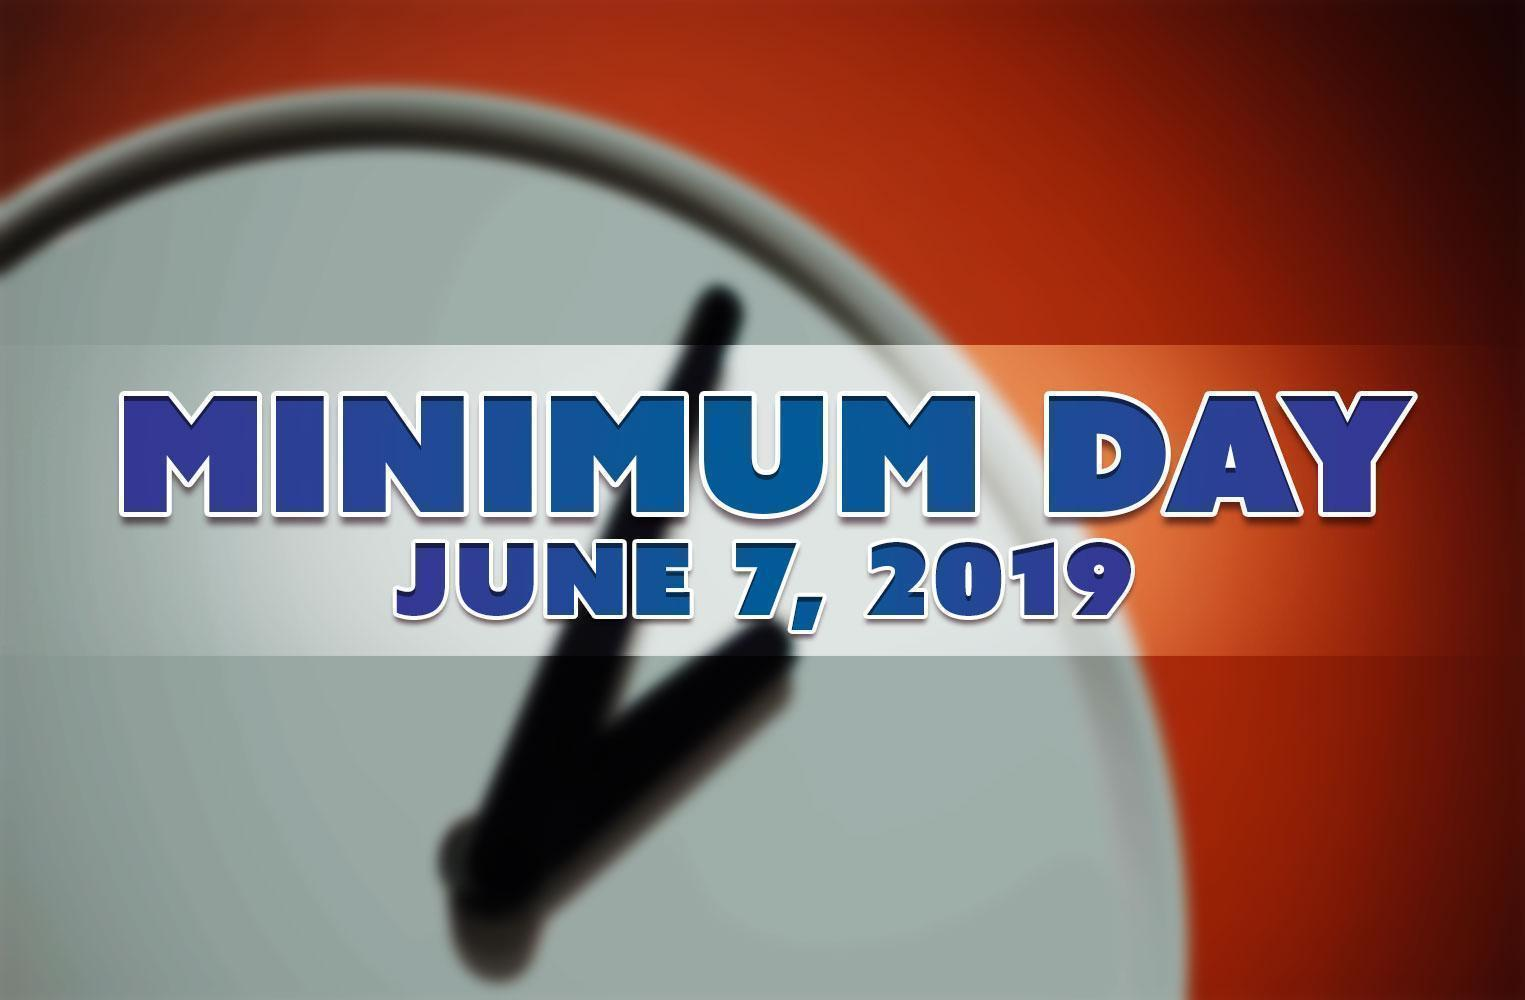 Minimum Day 2019